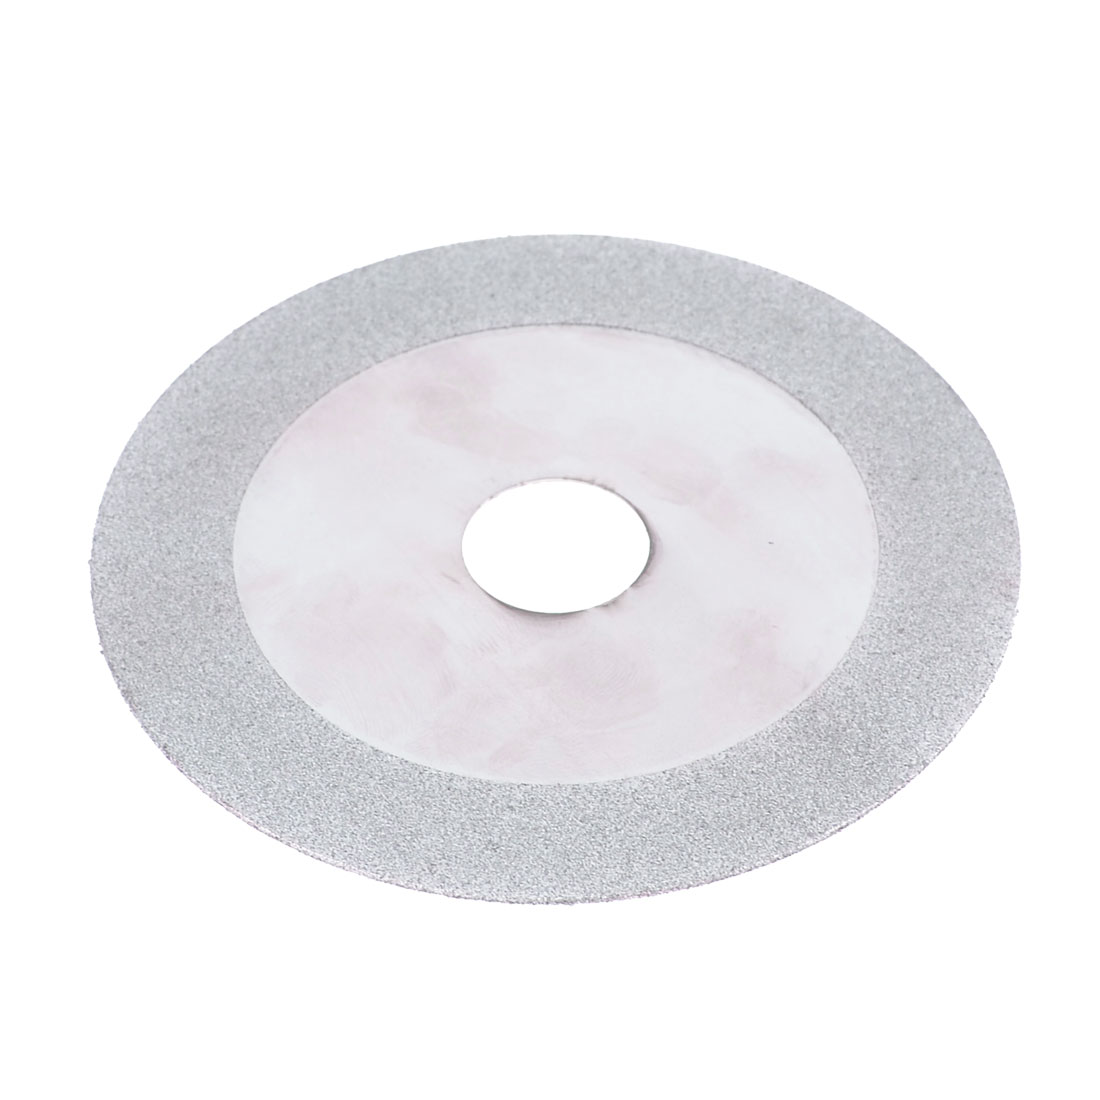 Tile Stone Diamond Cutting Disc Saw Slice 98mm x 20mm x 1mm